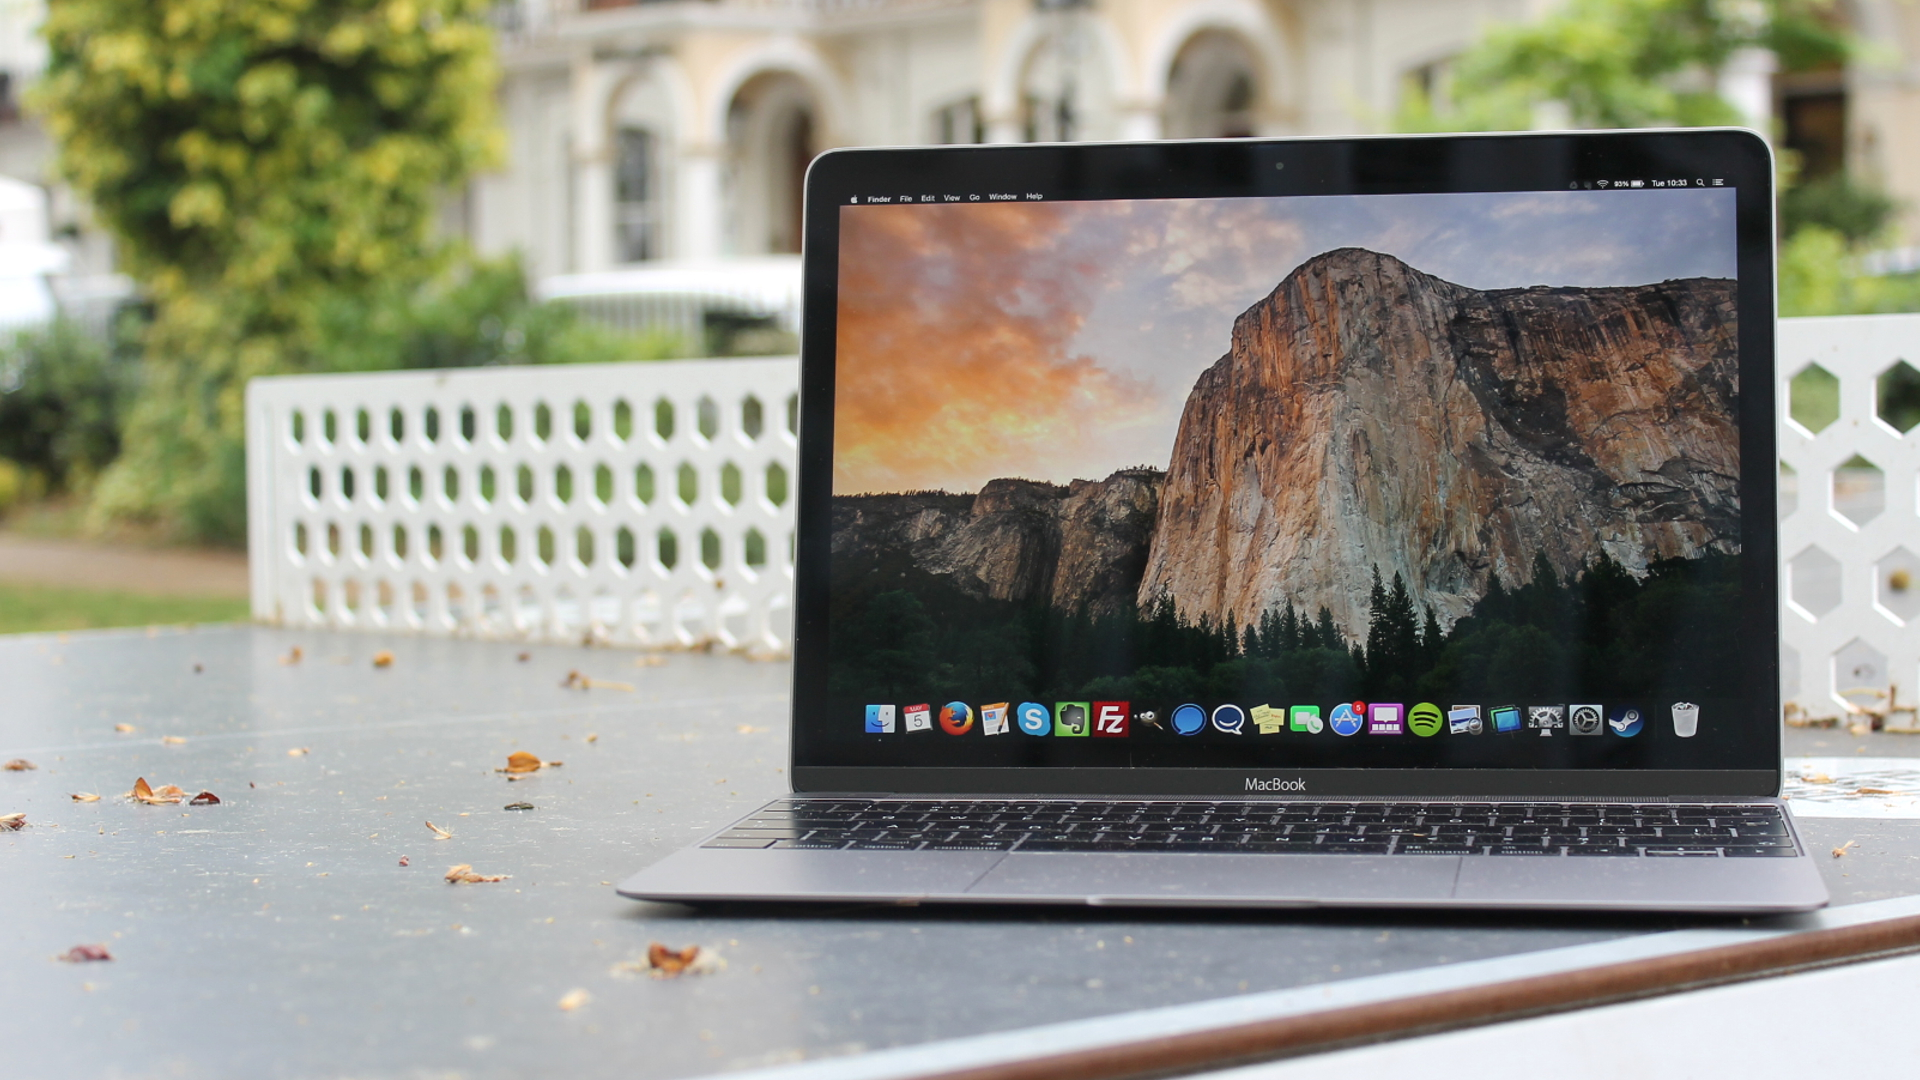 The best cheap MacBook deals on Amazon Prime Day 2018 1531341525_269_the-best-cheap-macbook-deals-on-amazon-prime-day-2018